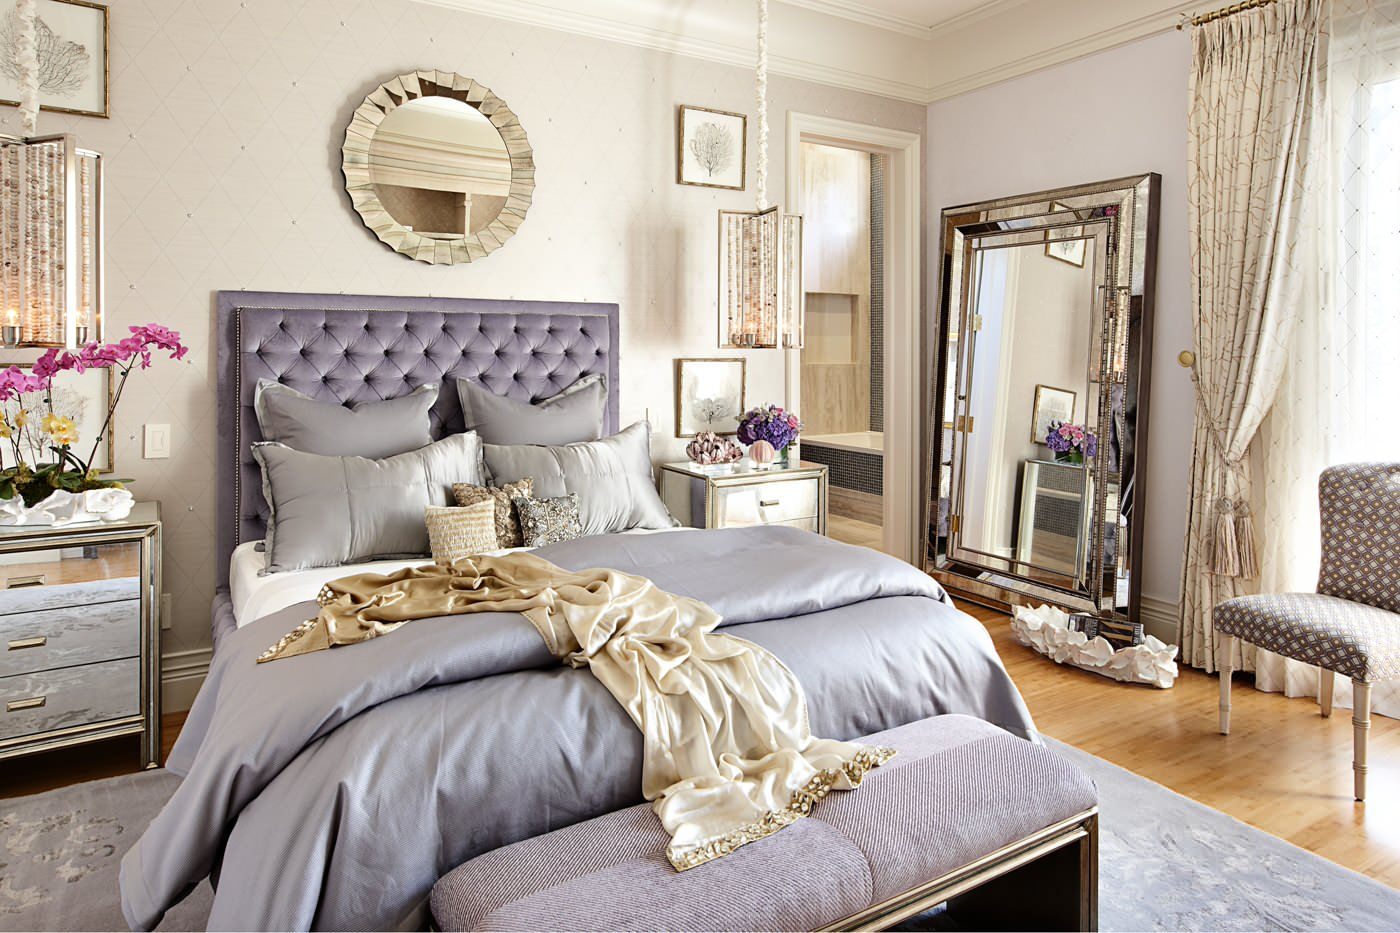 Charming Las Vegas Bedroom Purple Princess Adult Idea Shop Room Ideas Mirror  Nightstand Wall Mirror Silver Houzz